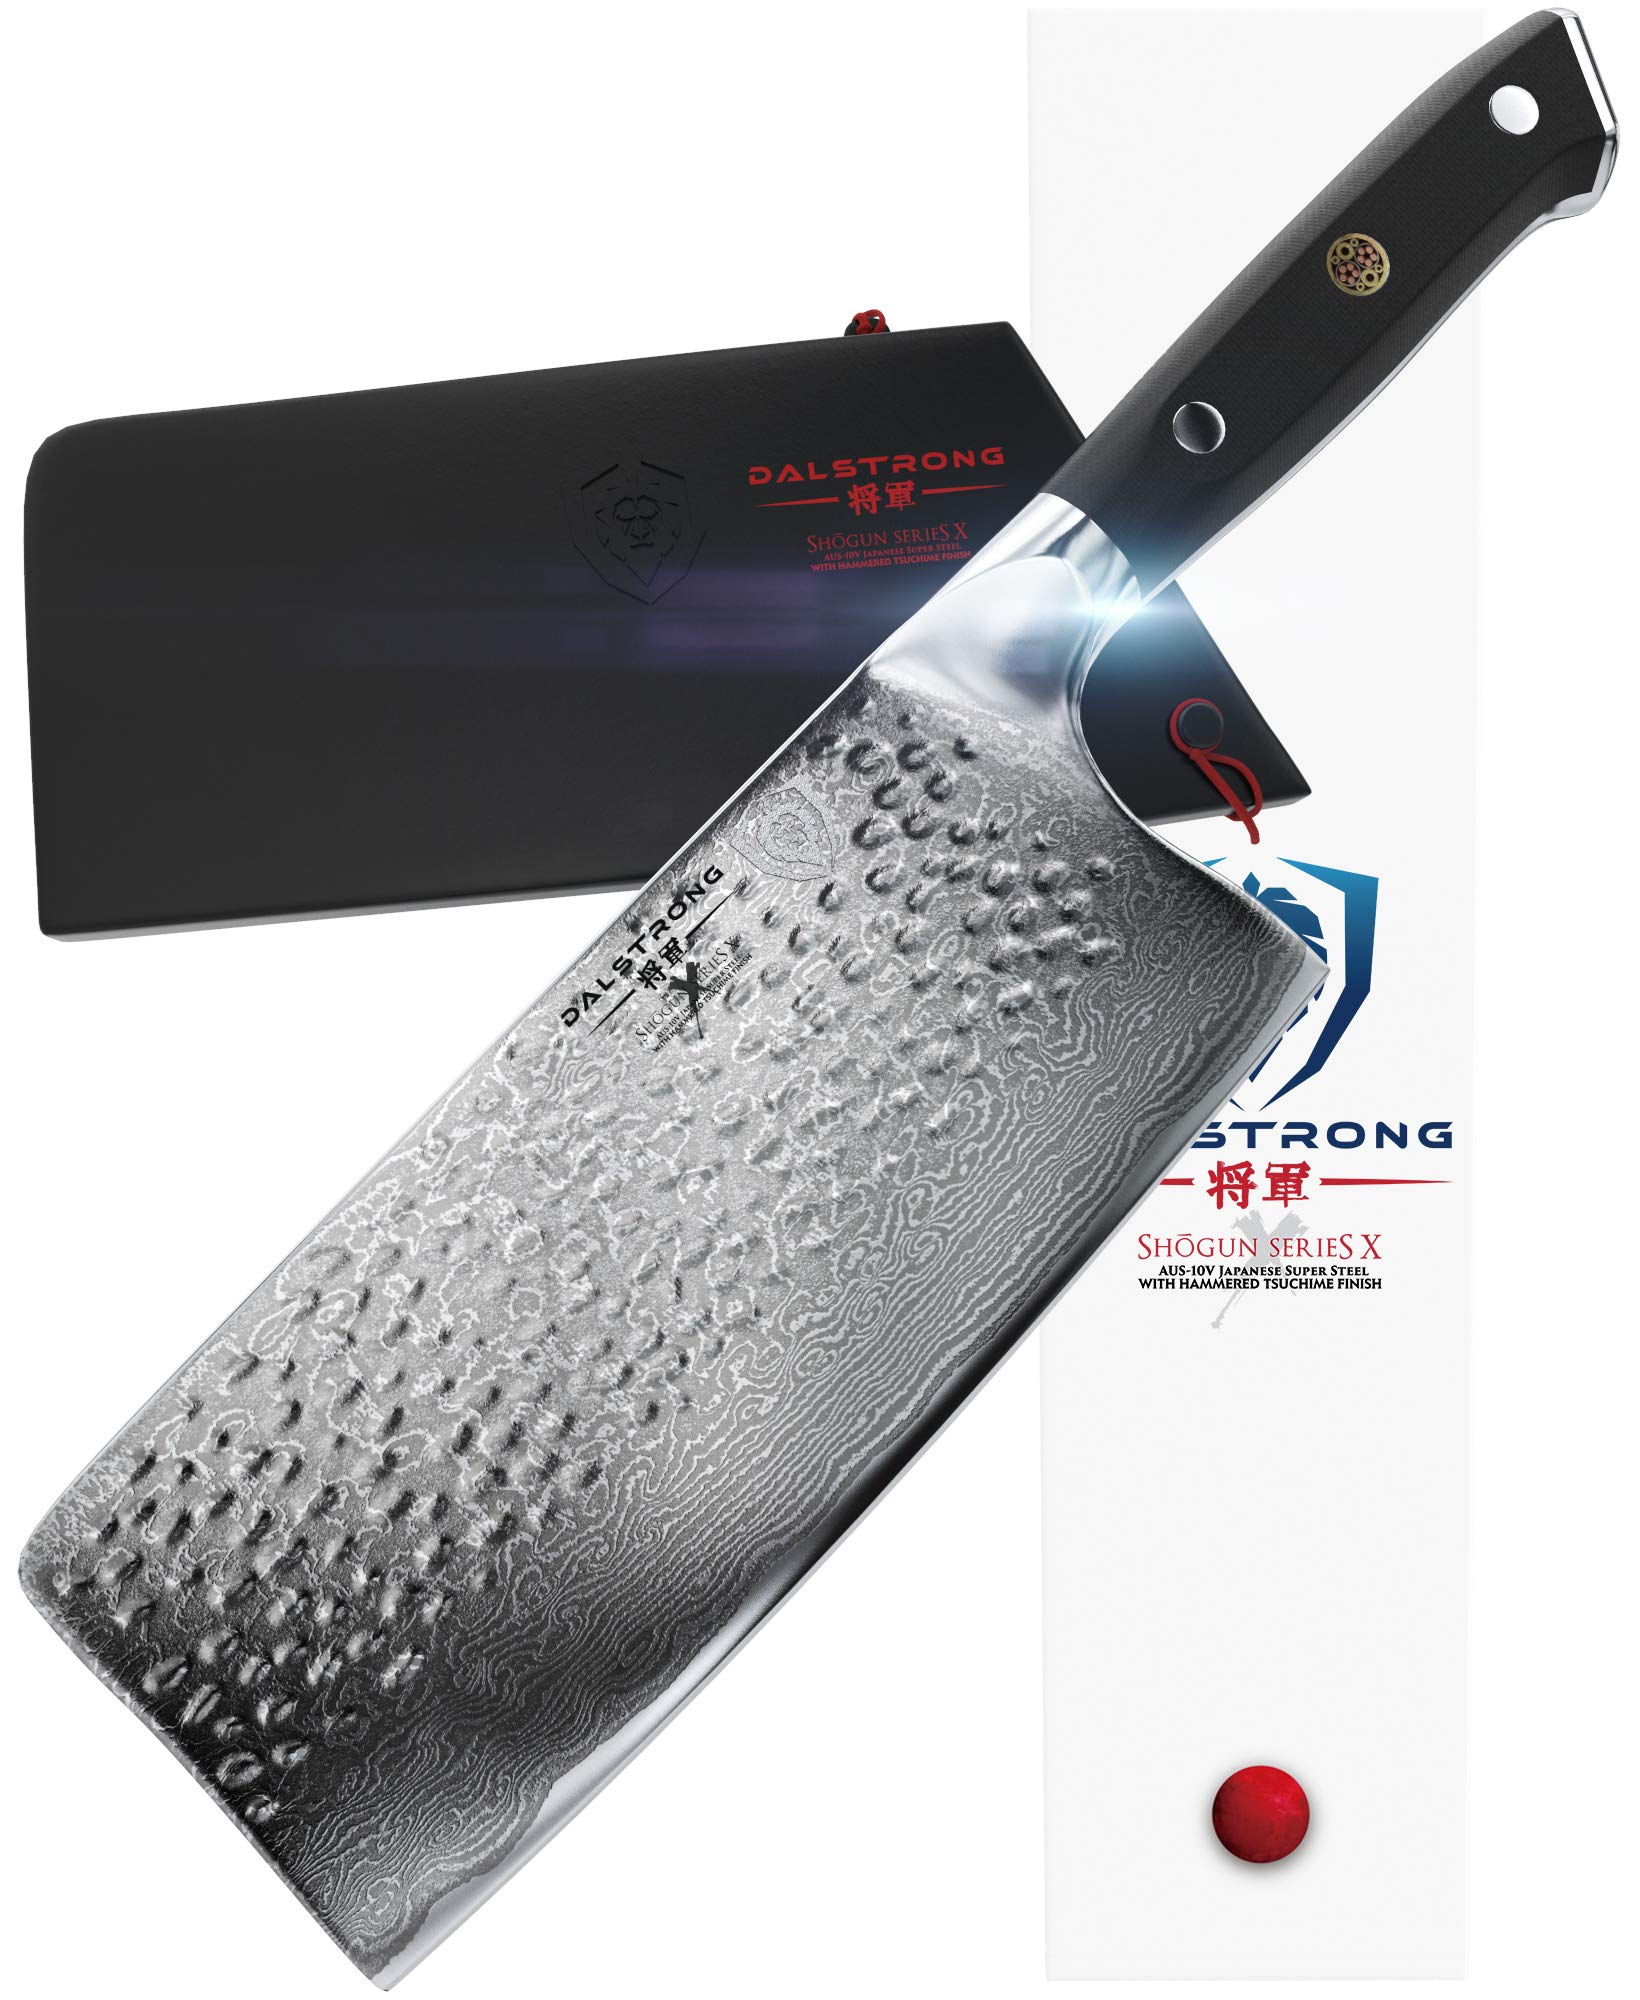 DALSTRONG Cleaver - Shogun Series X - Damascus - Japanese AUS-10V Super Steel - Vacuum Treated - 7'' Hammered - Sheath by Dalstrong